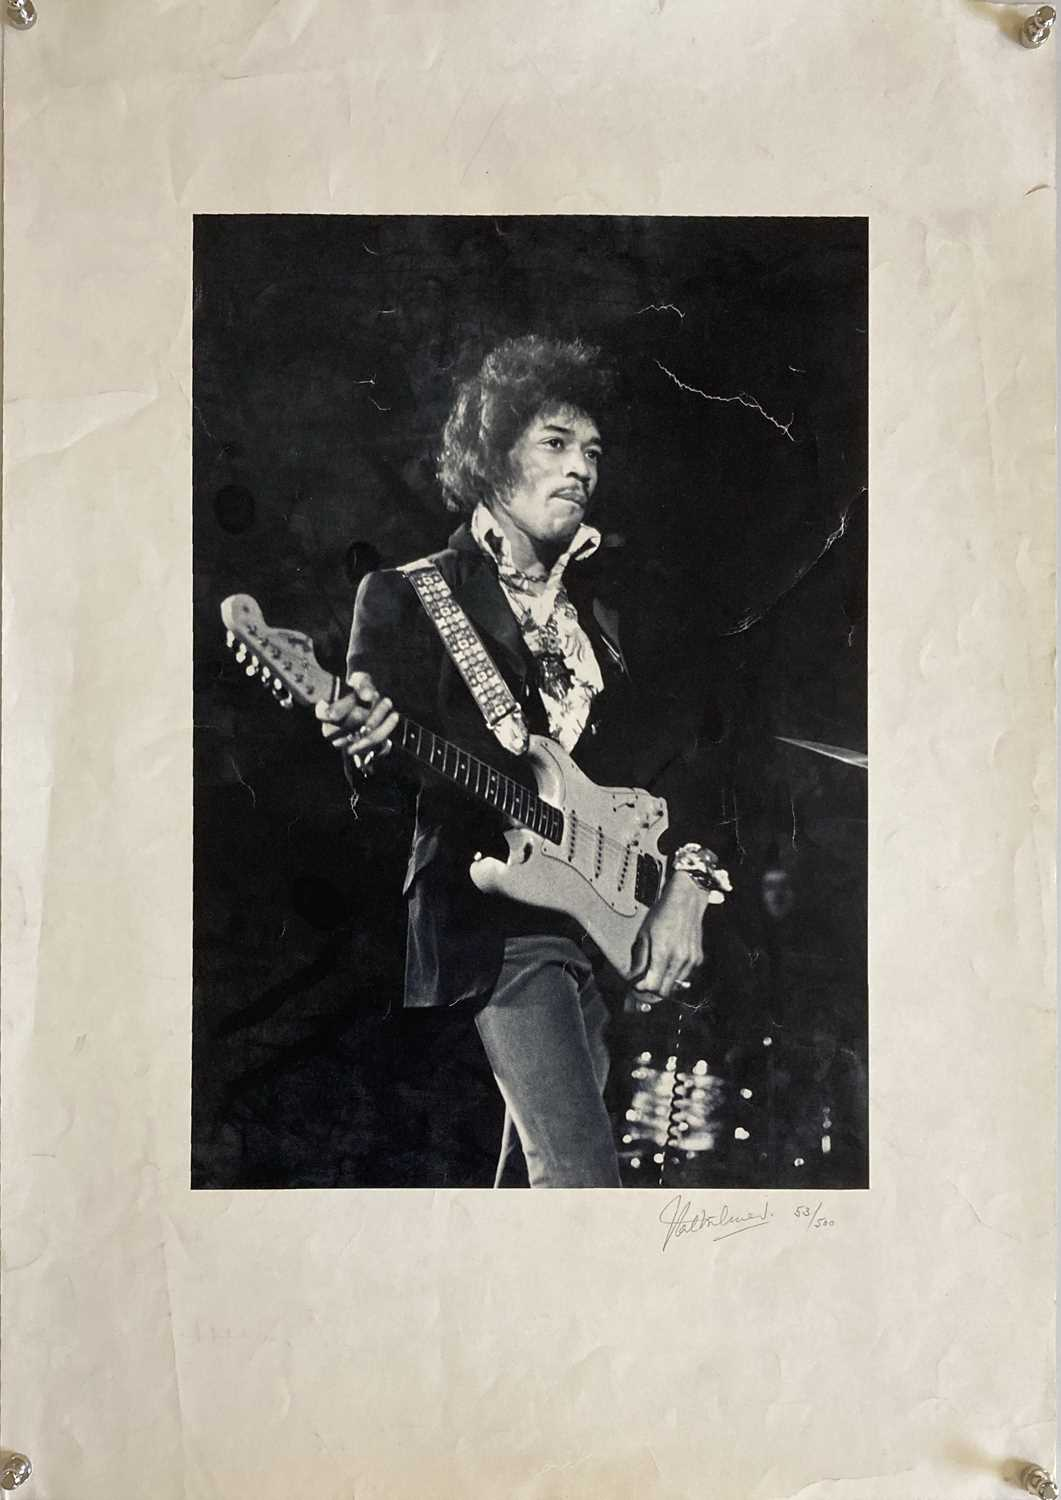 JIMI HENDRIX VAL WILMER SIGNED POSTER.